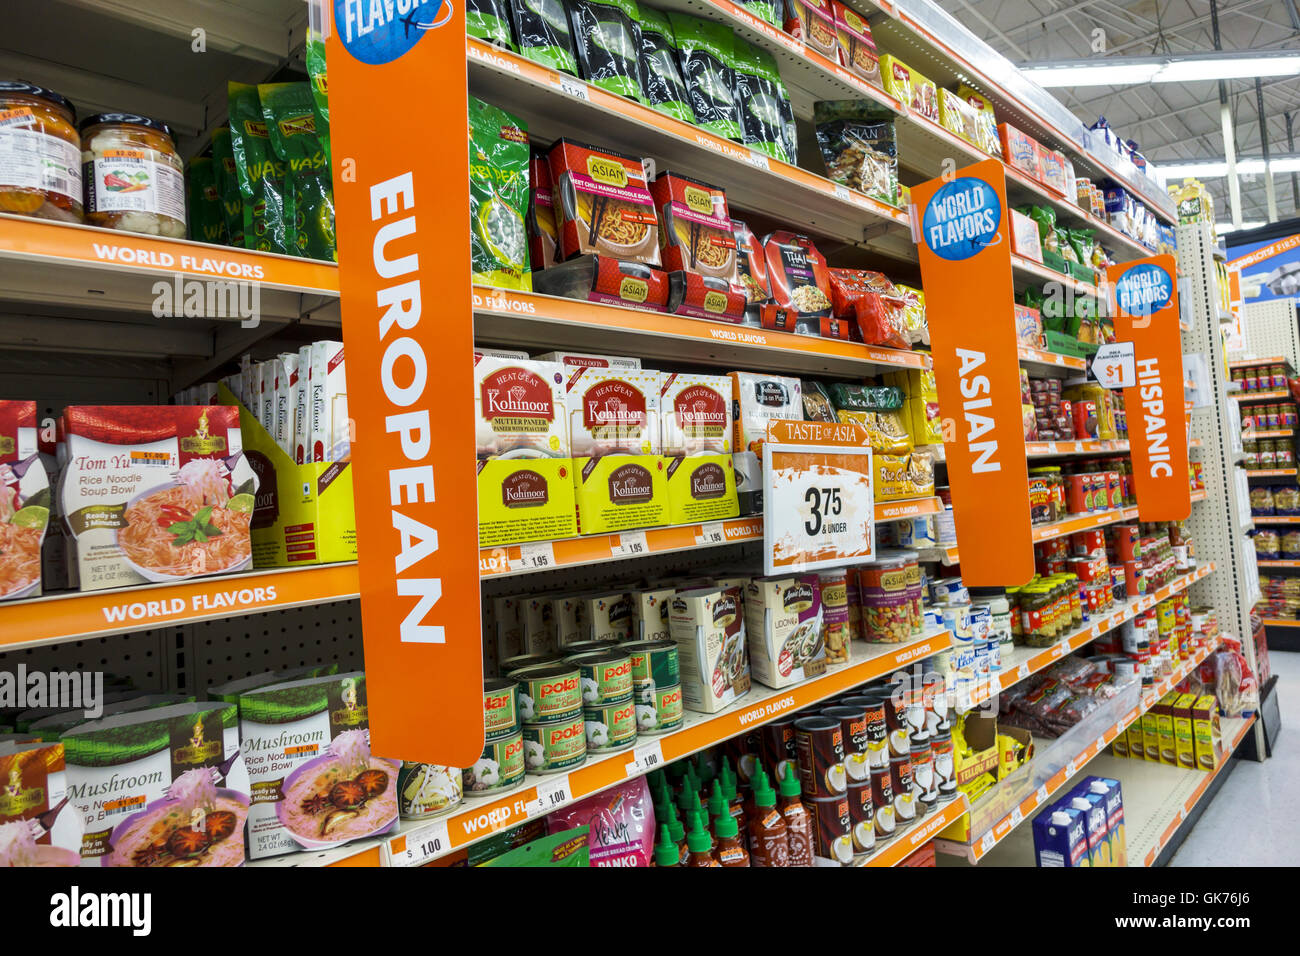 Big Lots # Change Store Find Discounts. Shopping List. Back to. Big Lots Weekly Ad Valid Dec 08, to Dec 15, Shopping List. 0. Menu. See More 6. Beginning of side bar. 6. Weekly Ad Sat Dec 8 - Dec 15, Big Lots # change store. Find Discounts. Shopping List. End of side bar. Table of Contents.